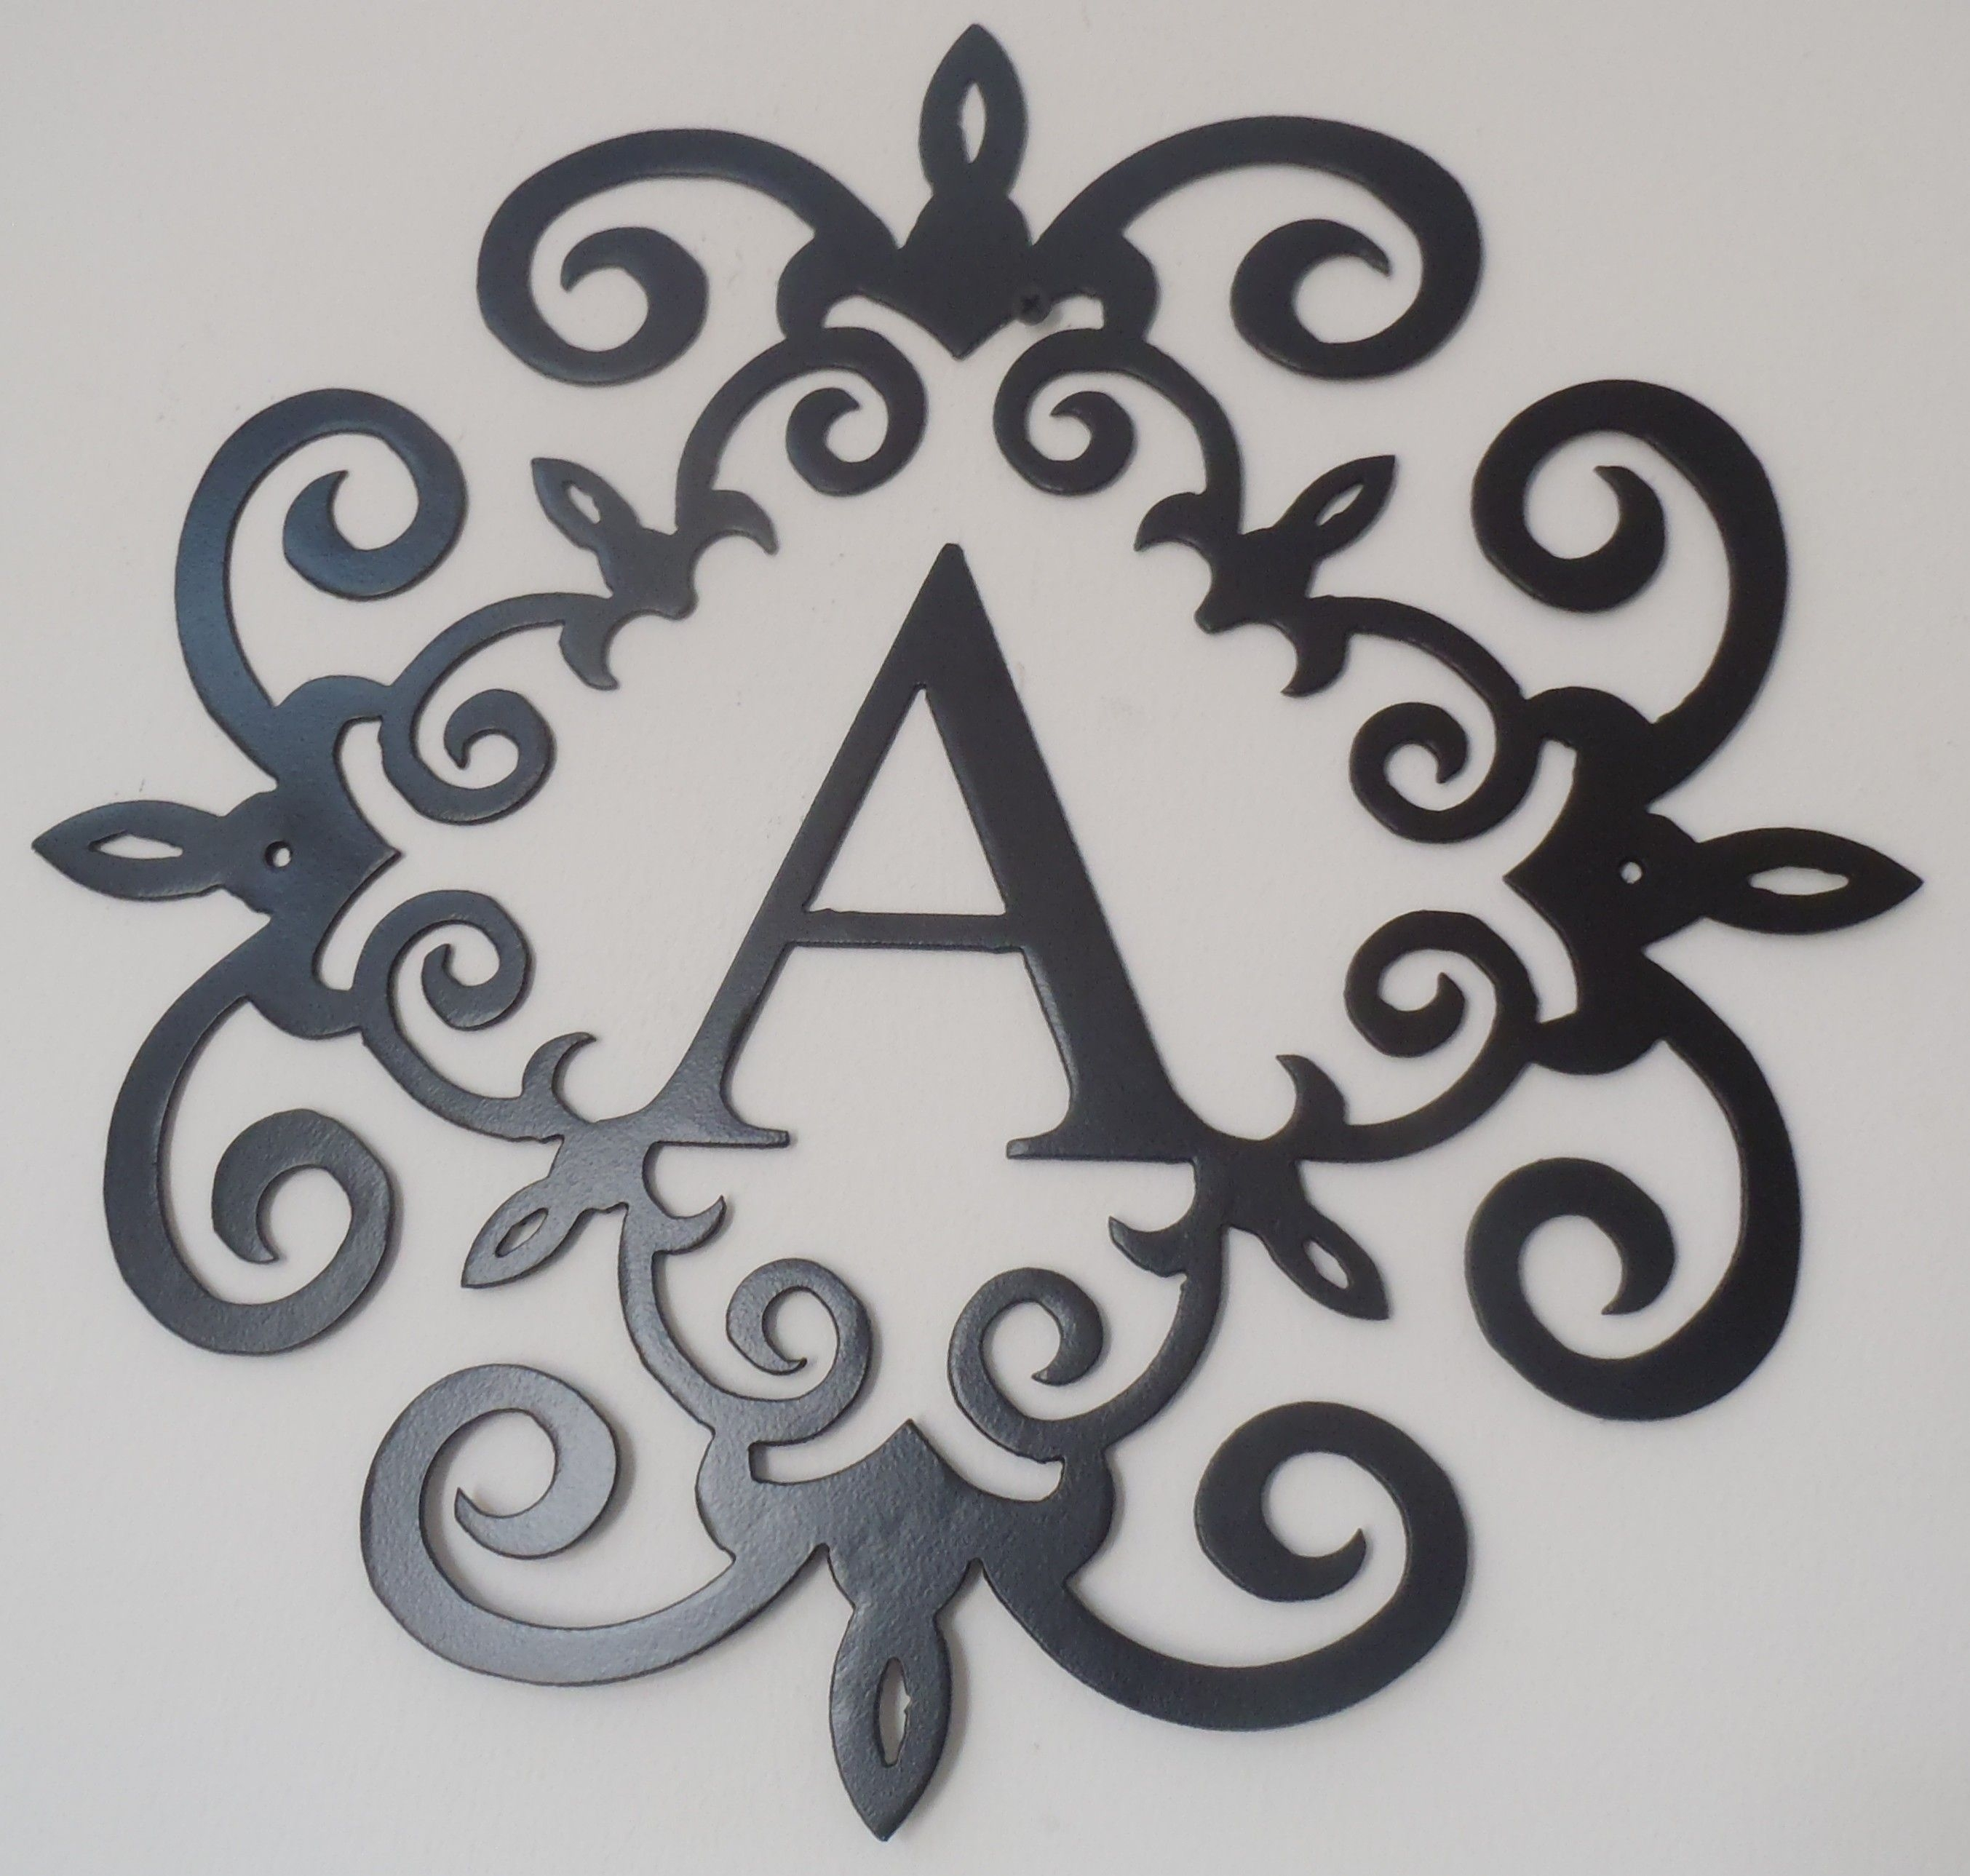 Family Initial, Monogram Inside A Metal Scroll With A Letter, Wall Intended For 2018 Metal Letter Wall Art (Gallery 14 of 20)